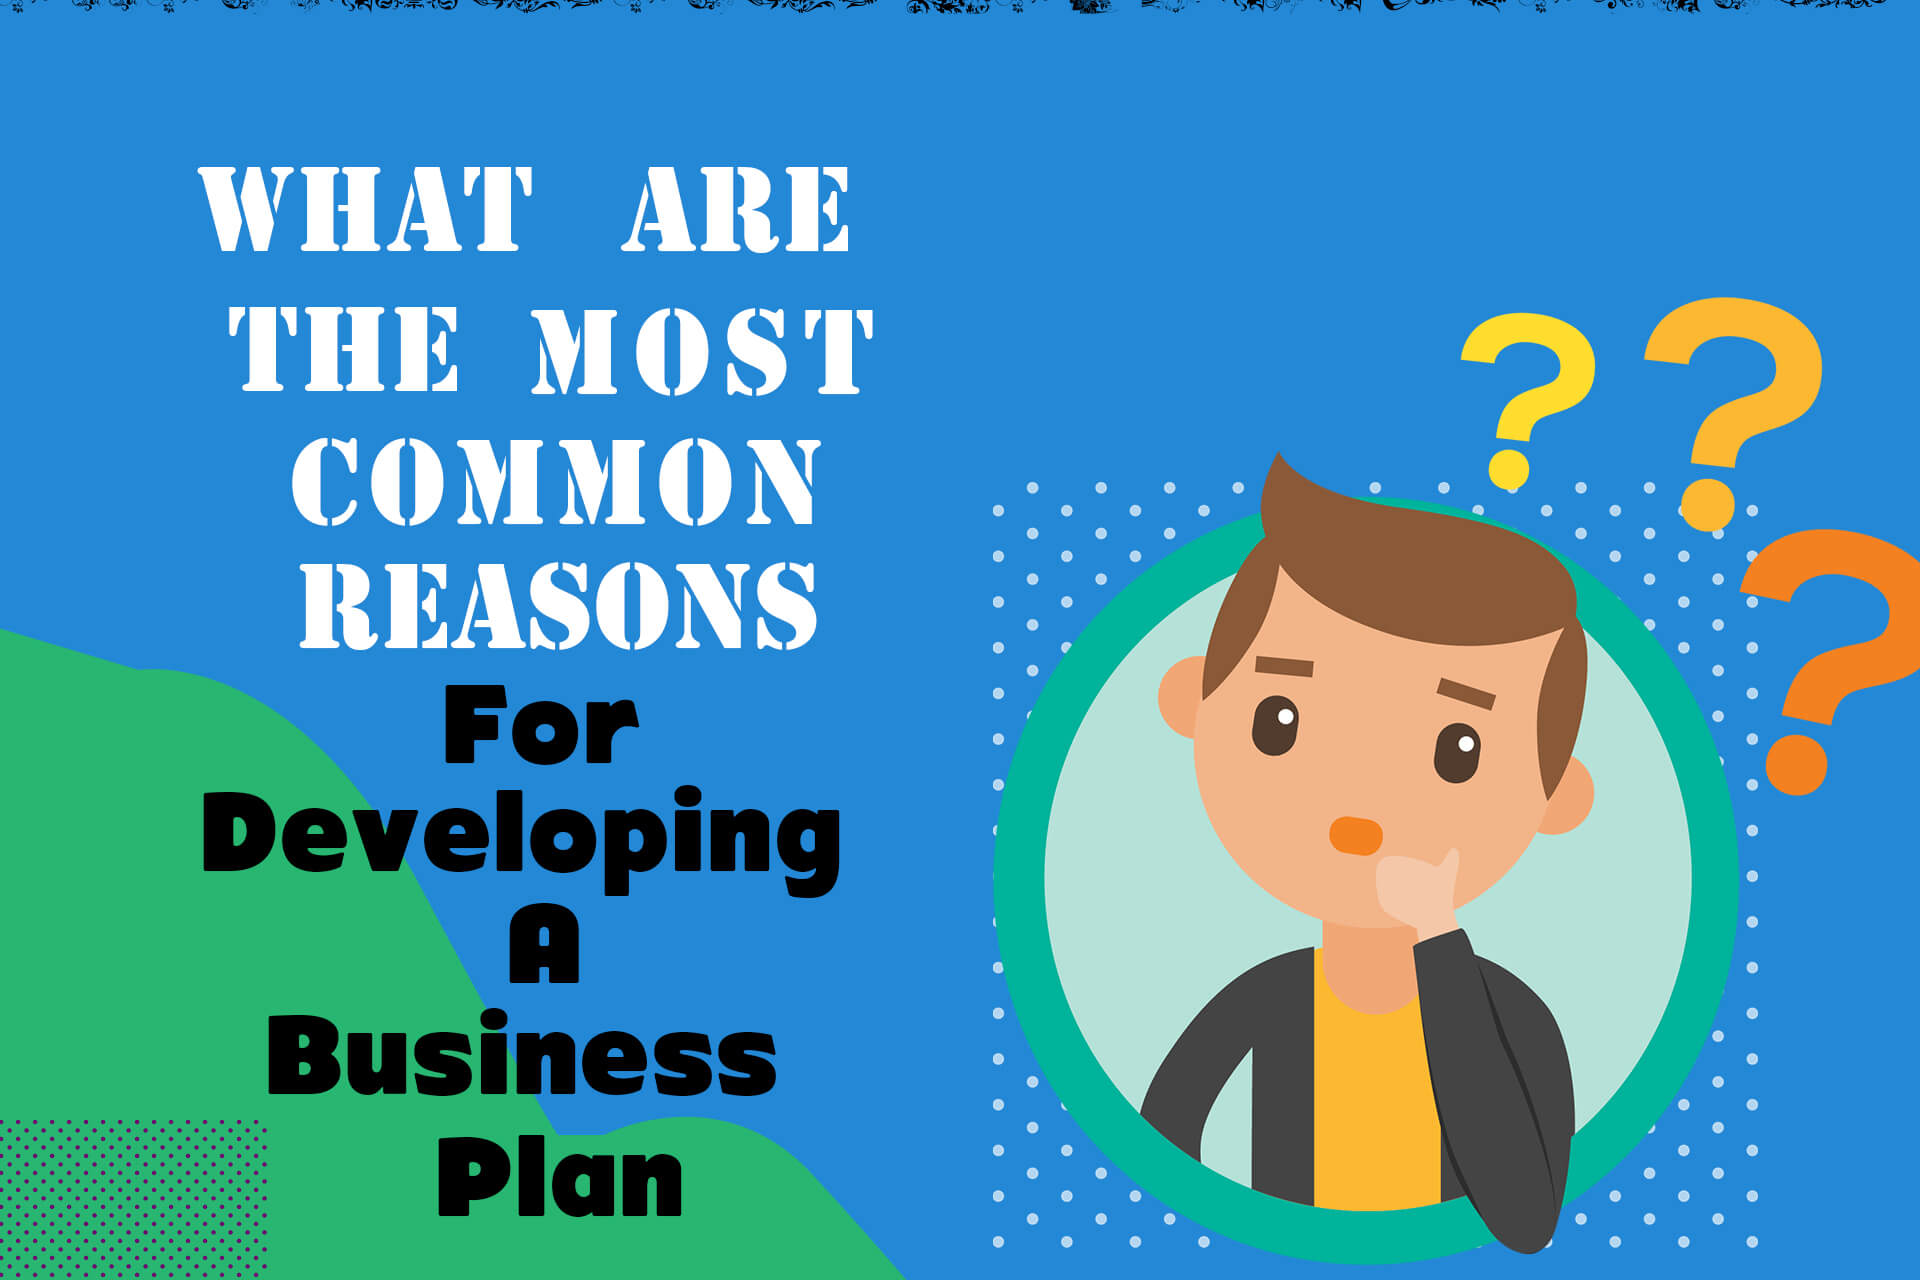 What Are The Most Common Reasons For Developing A Business Plan?